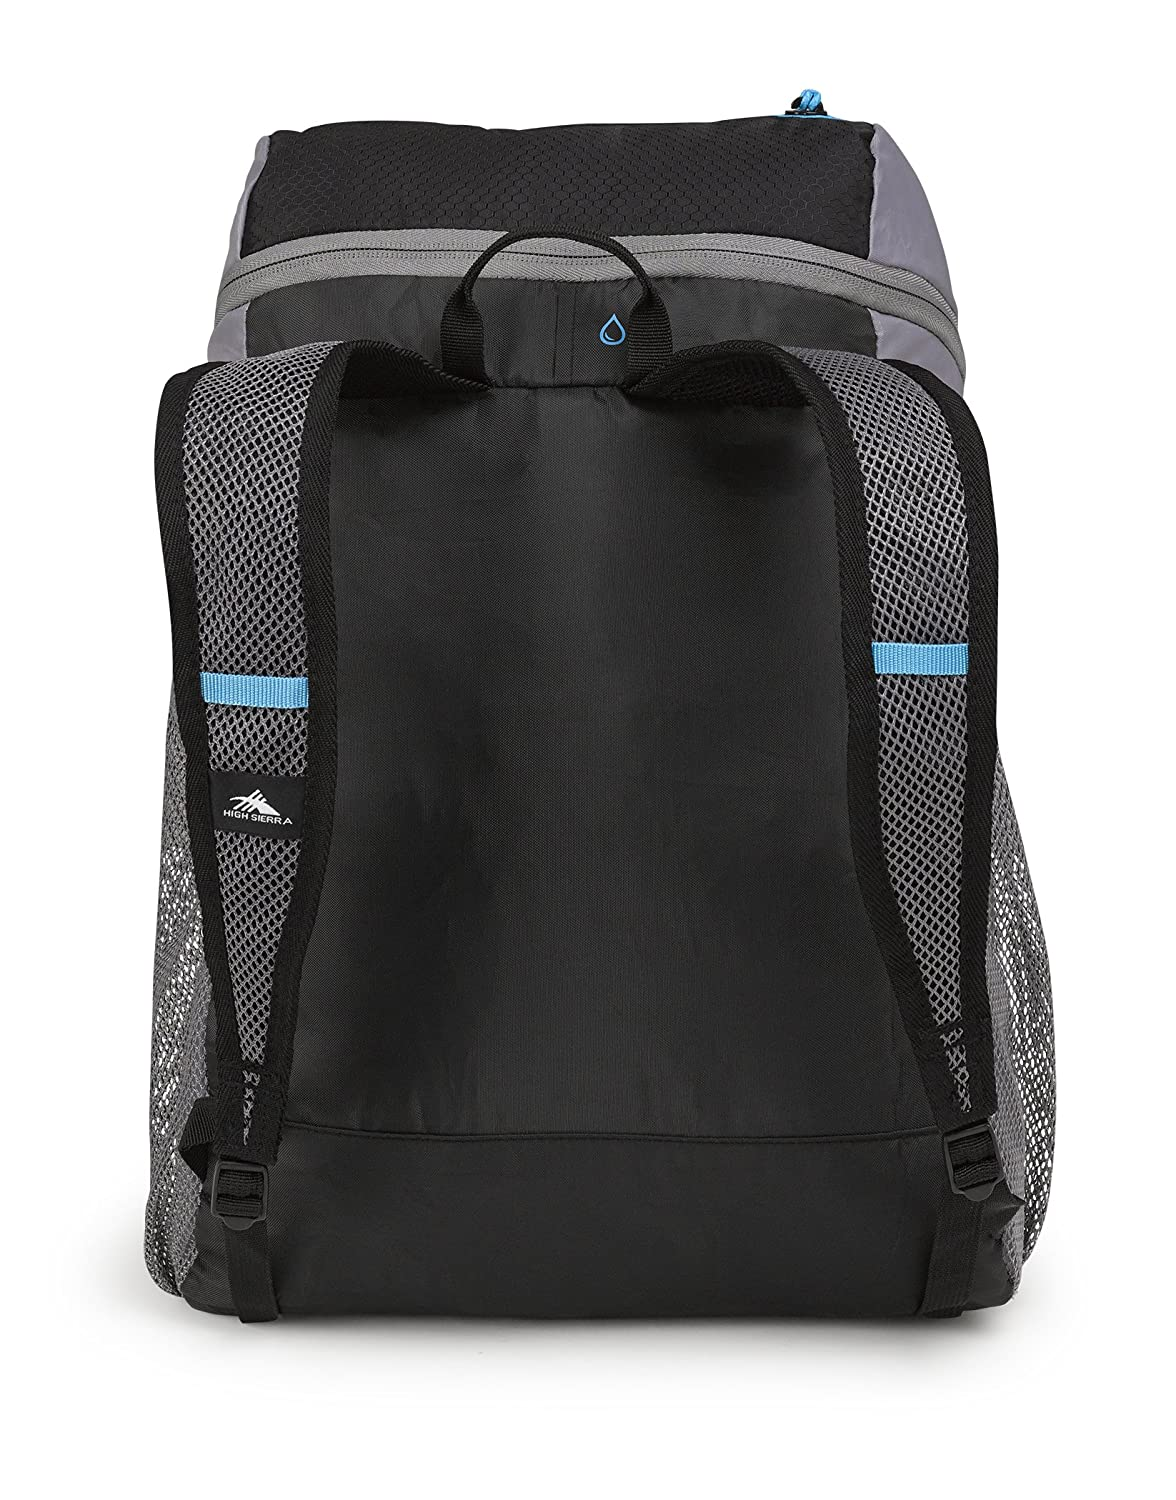 High Sierra 20l Packable Sport Backpack- Fenix Toulouse Handball 03c6c1506db73